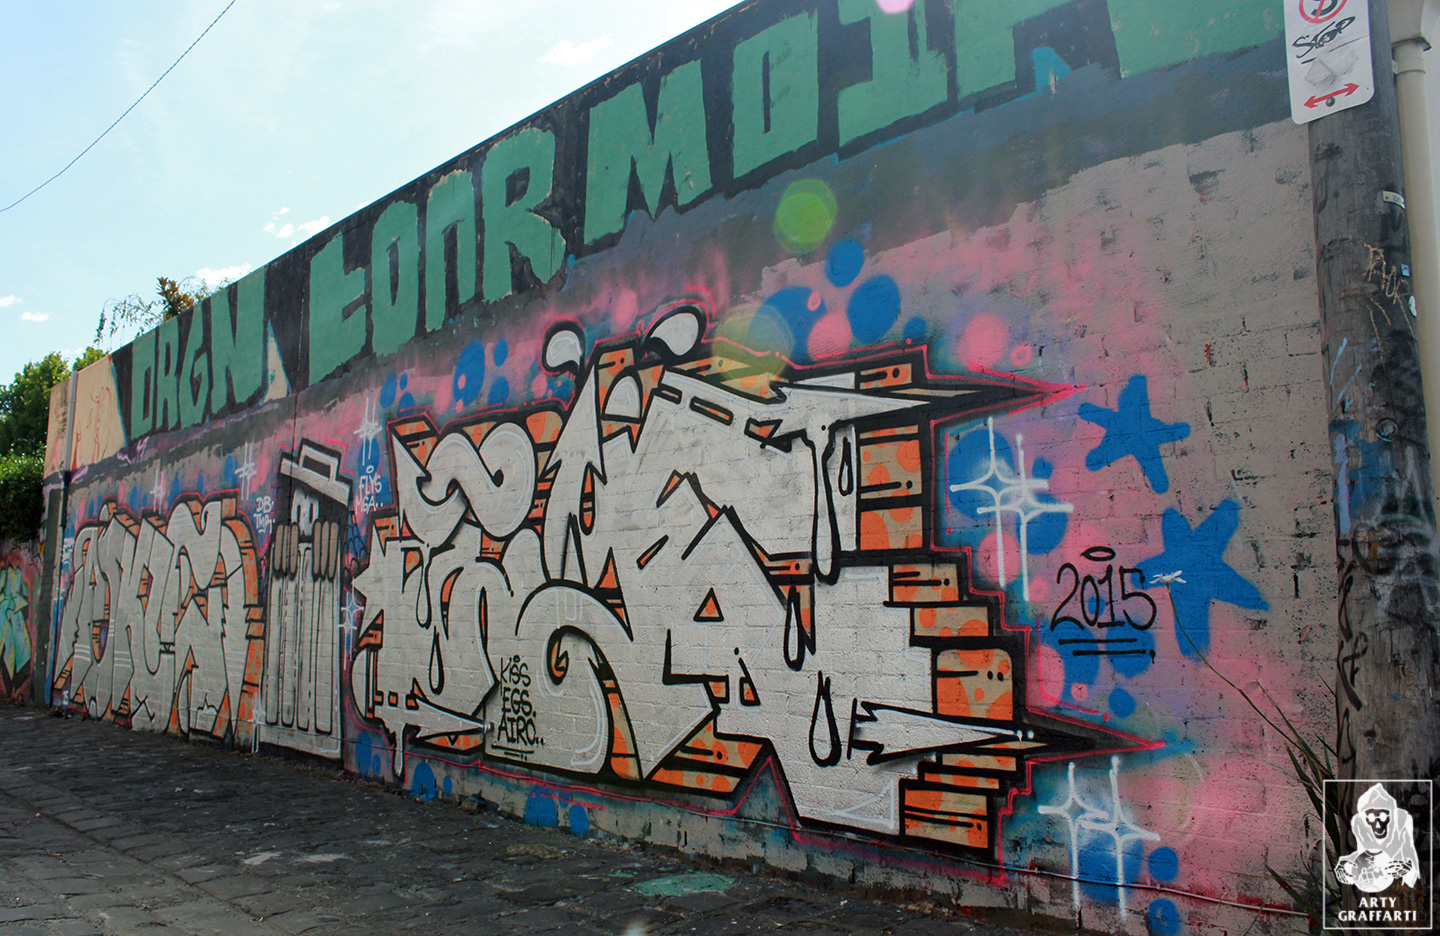 Pokie-Eye-Fitzroy-Graffiti-Melbourne-Arty-Graffarti